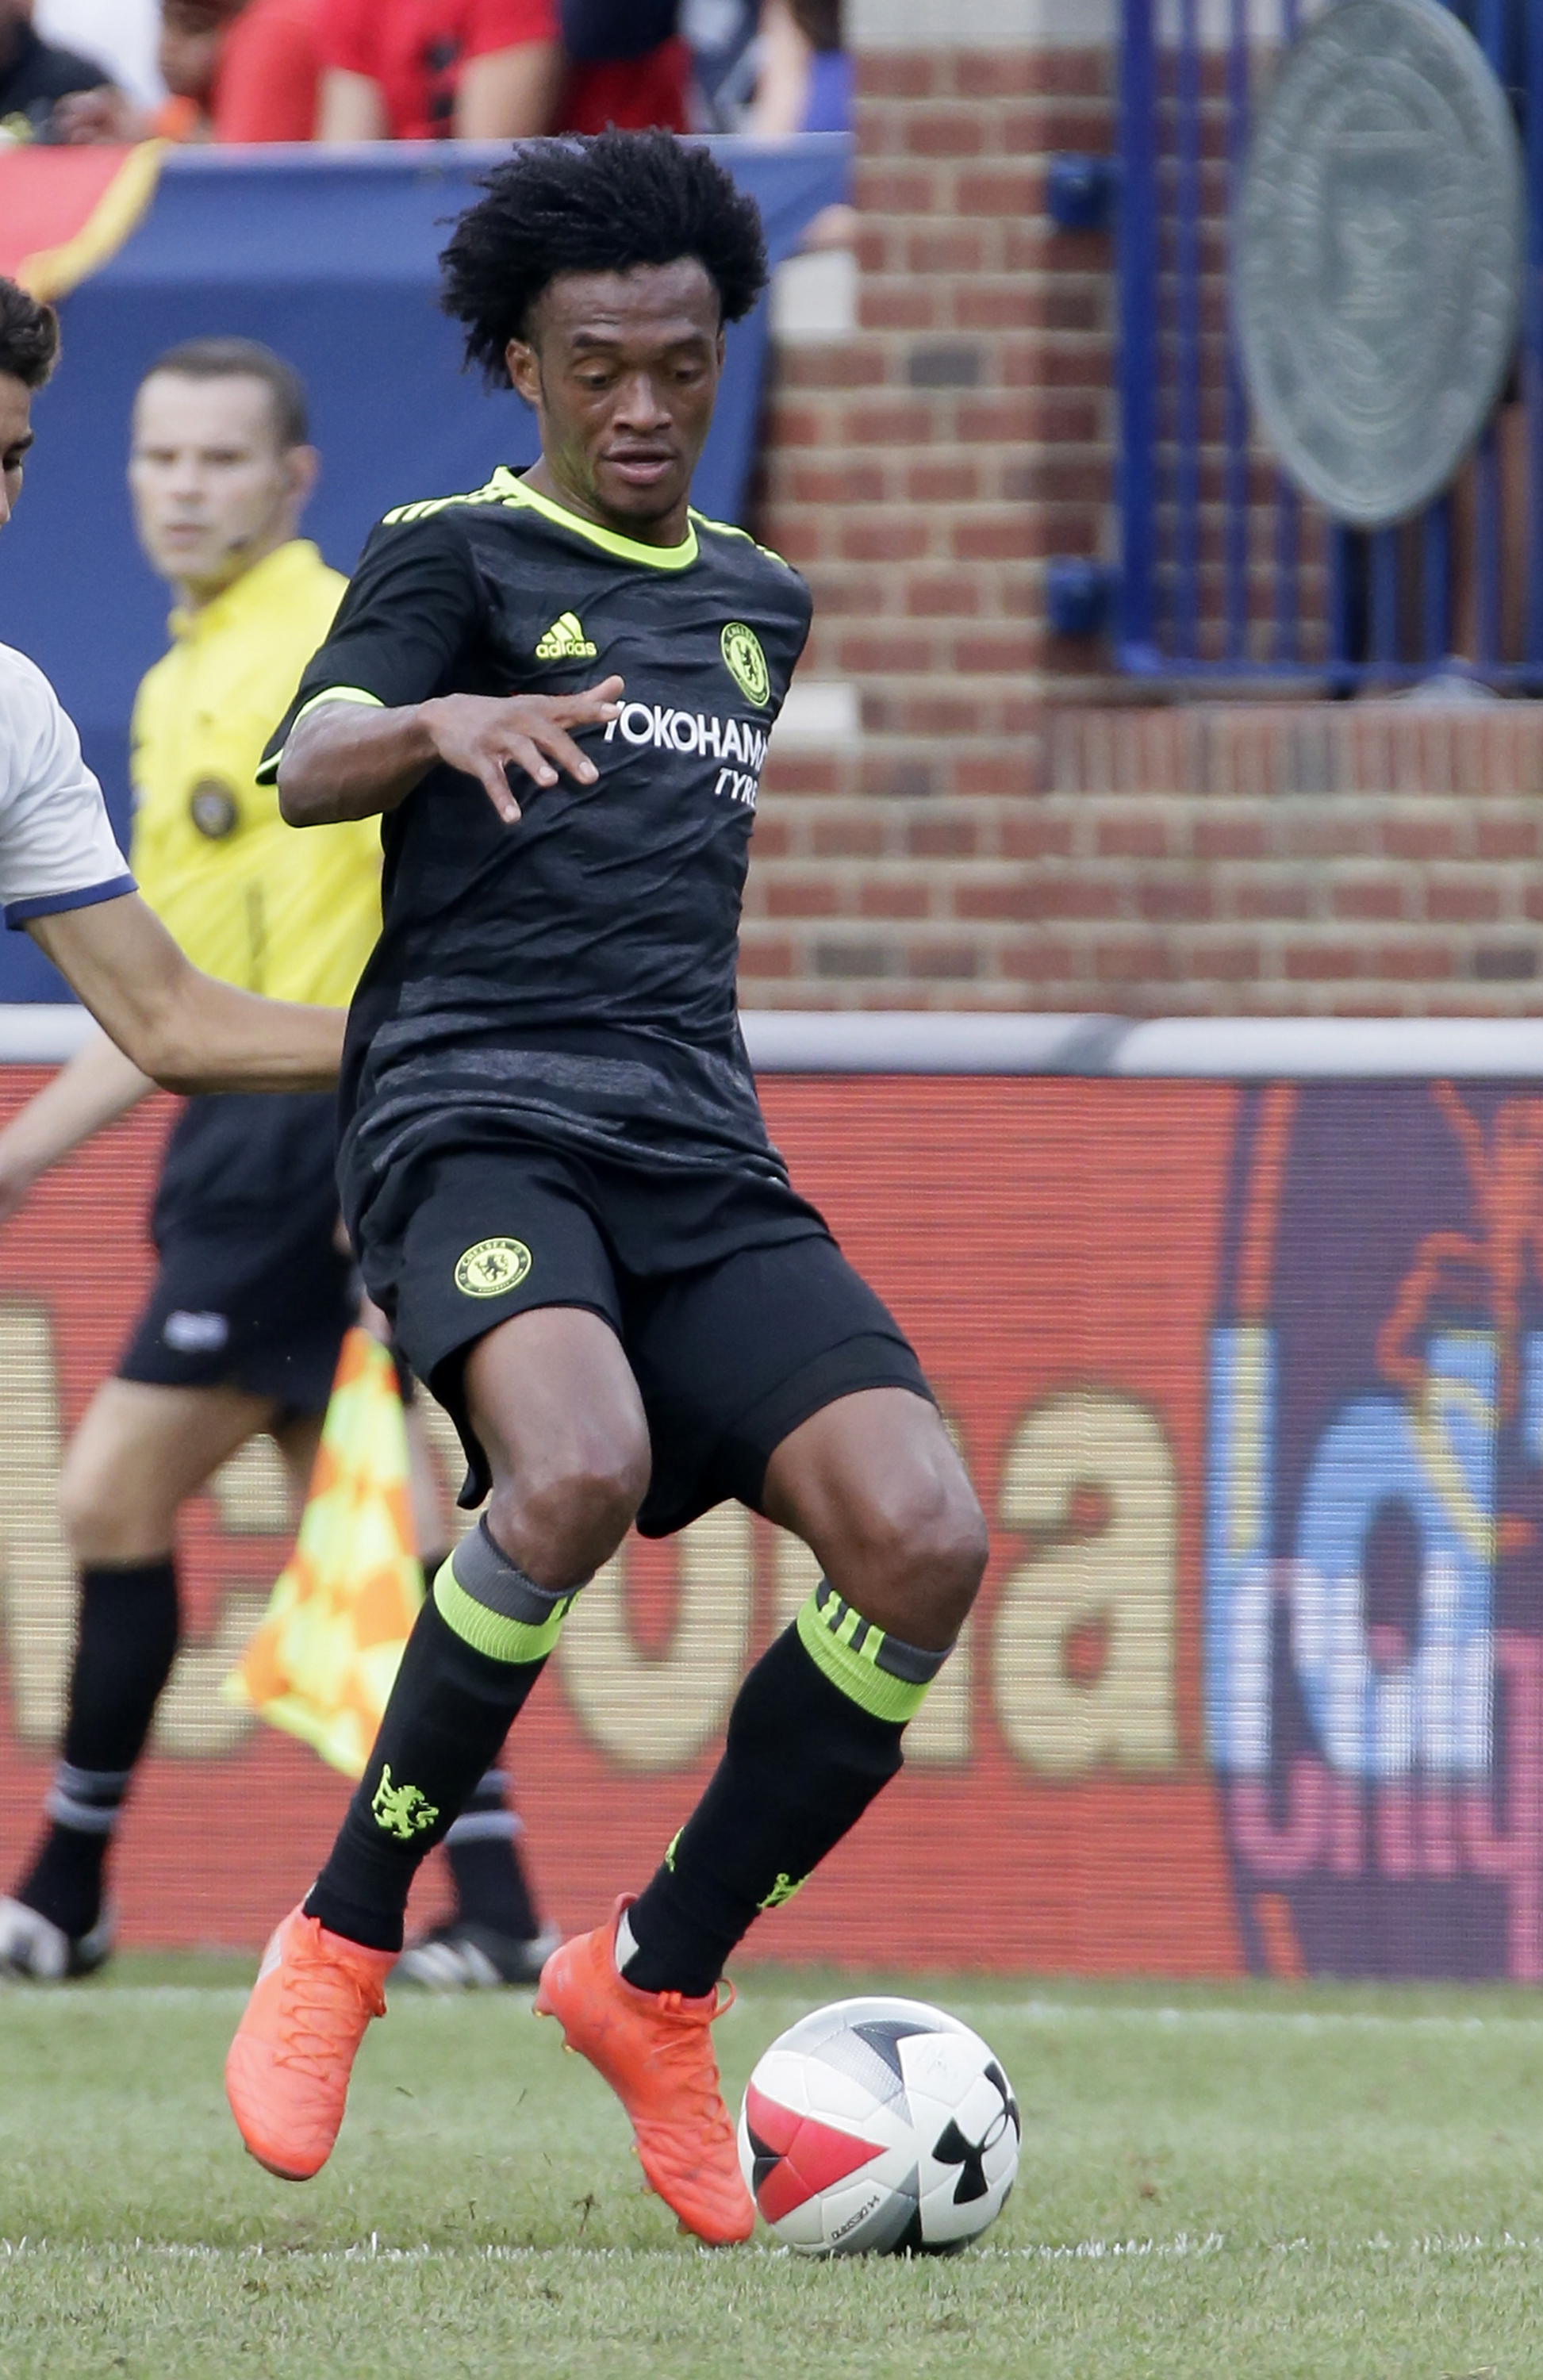 Cuadrado playing for Chelsea at the ICC